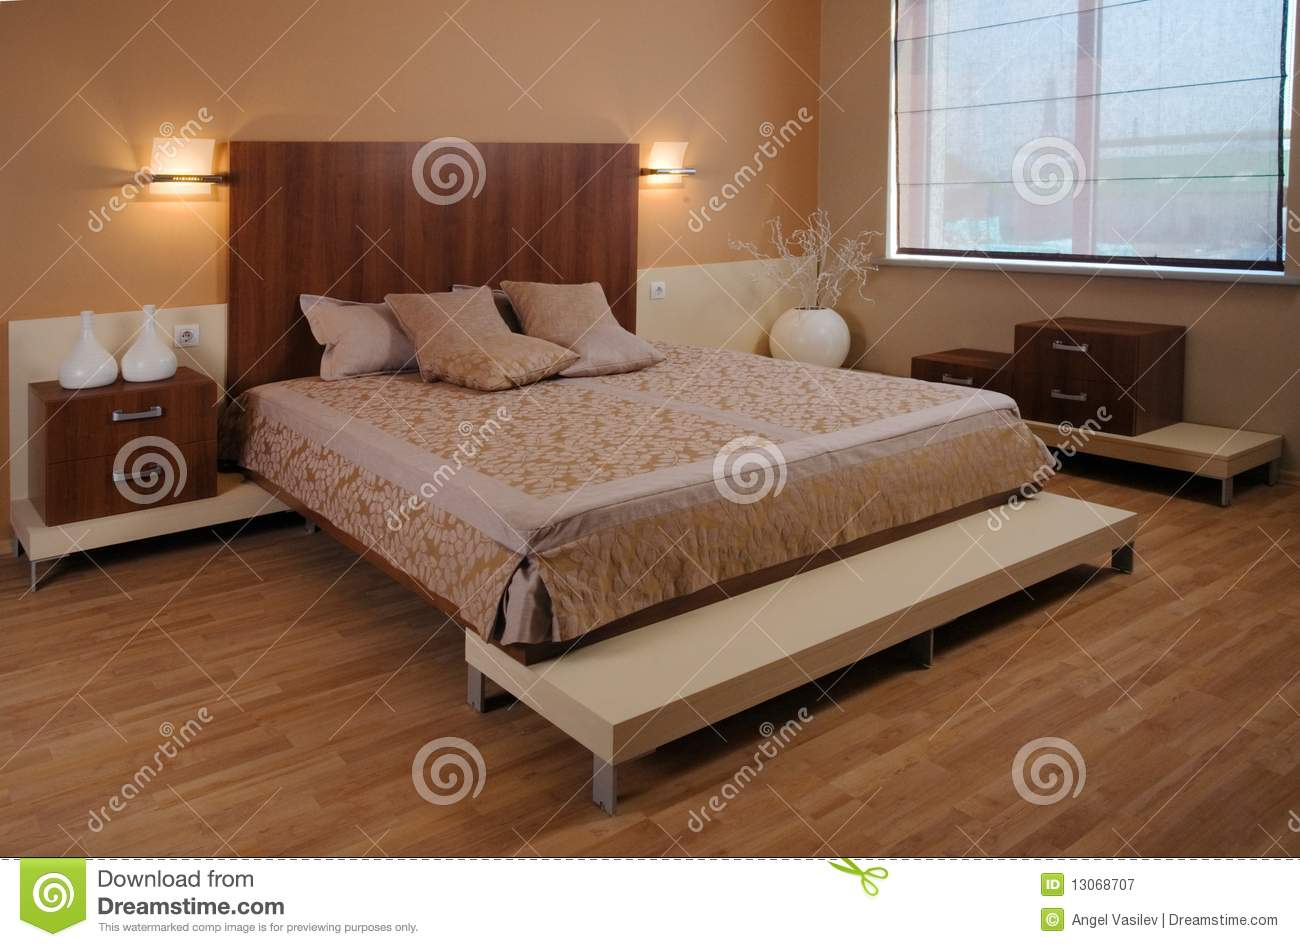 Beautiful and modern bedroom interior design stock photo for Beautiful bedroom interior